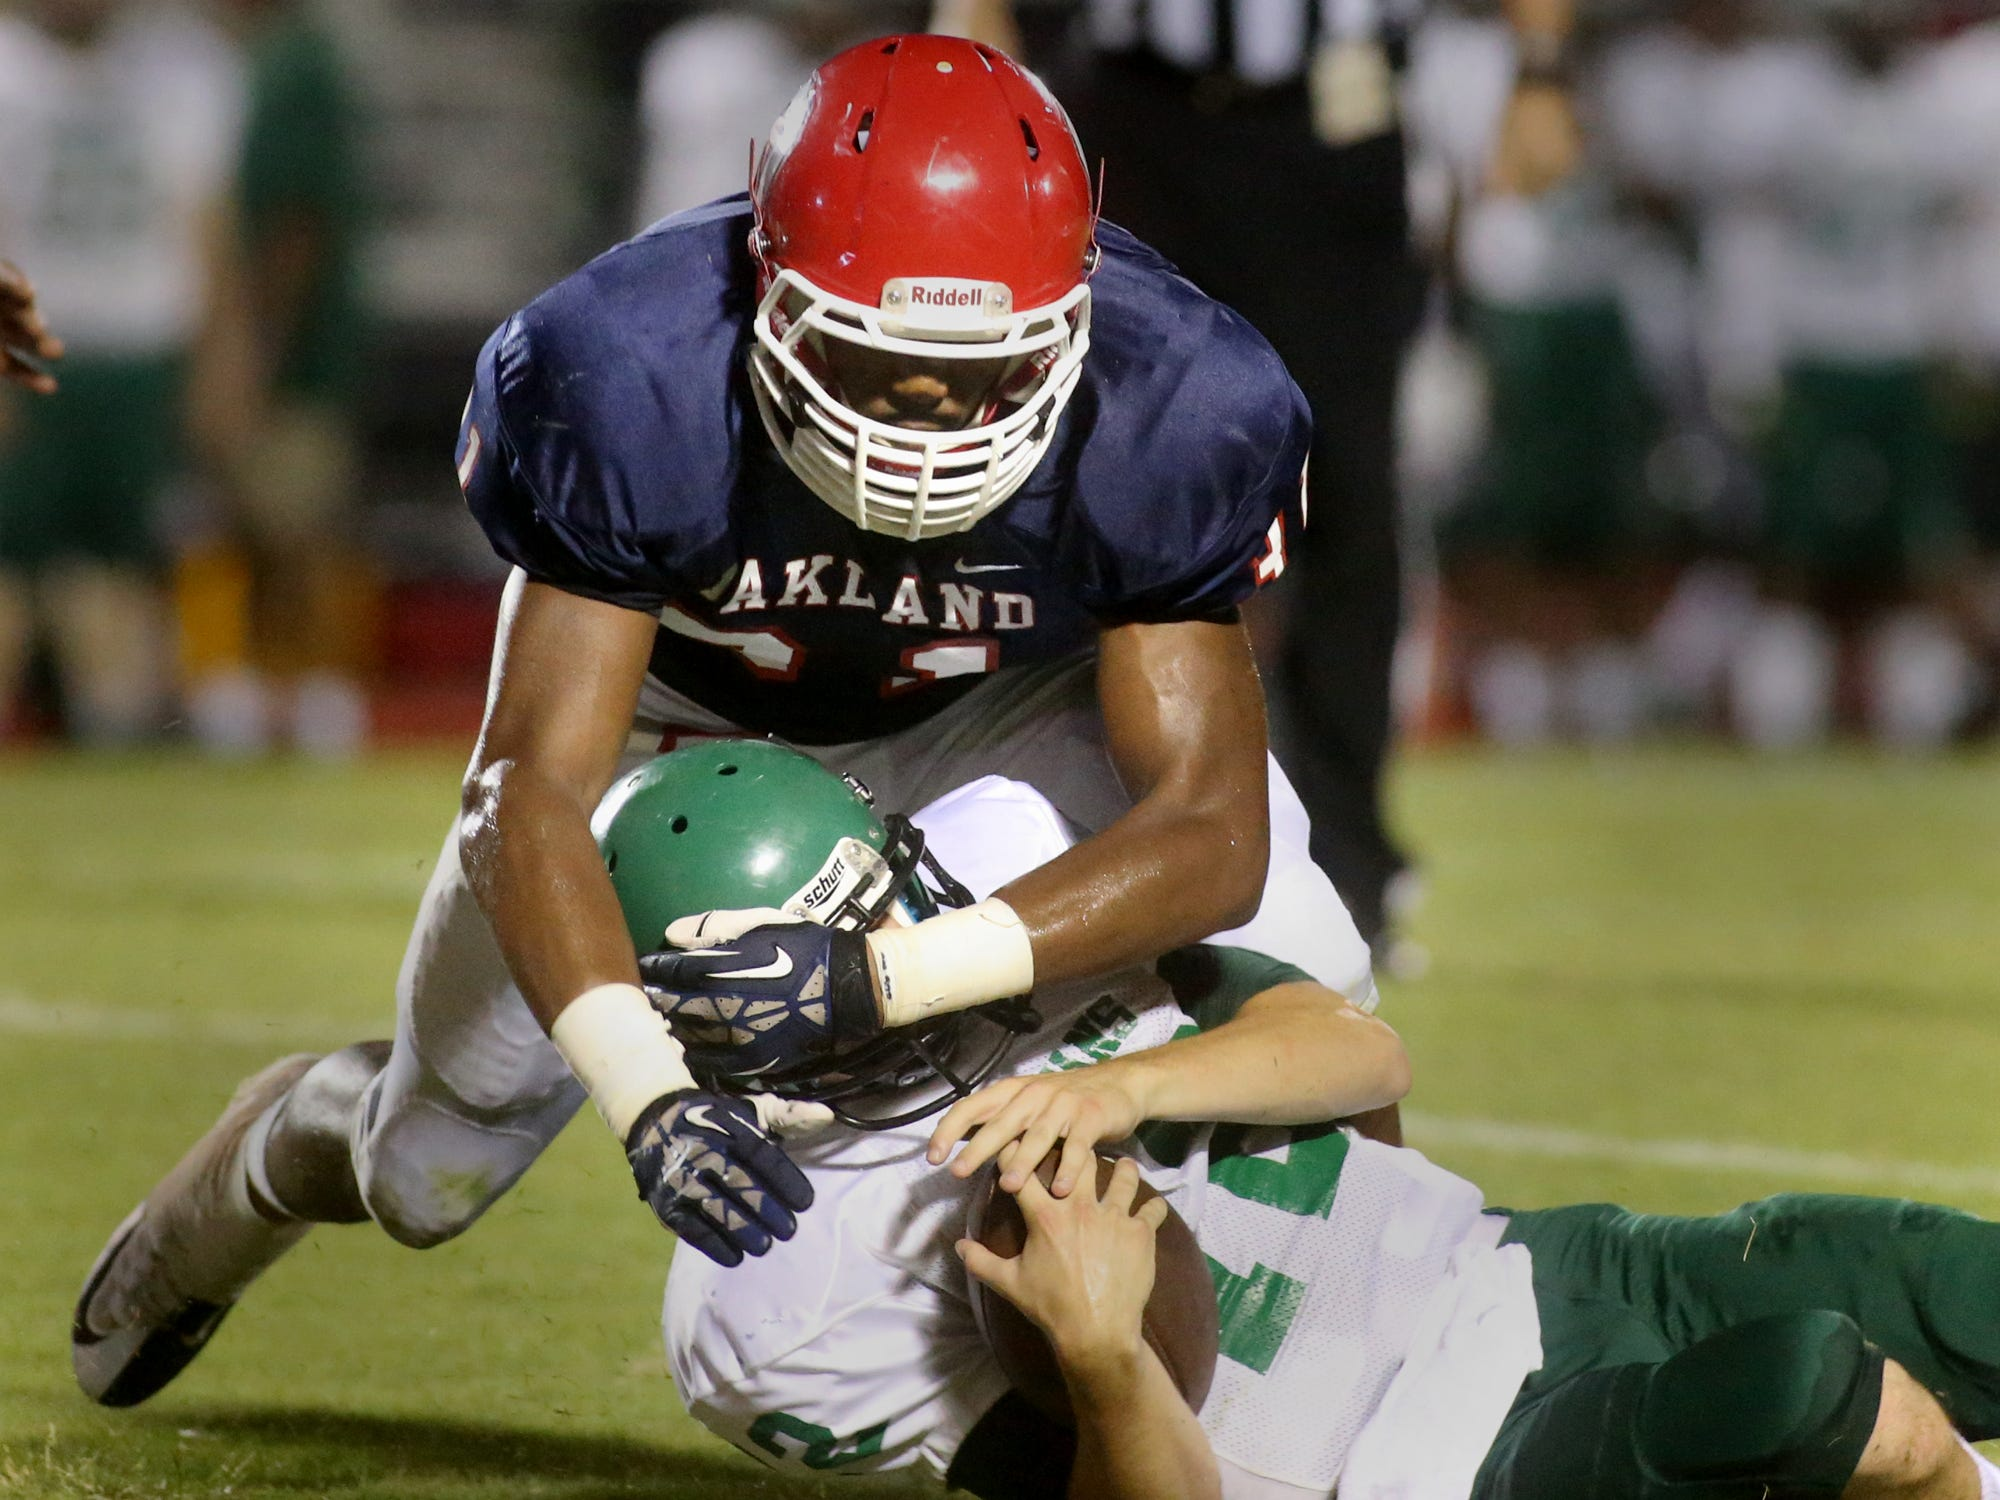 Oakland's Josh Smith takes down White Station quarterback Burk Williams in the first half of the gameagainst White Station at Oakland, on Friday, August 2, 2014.